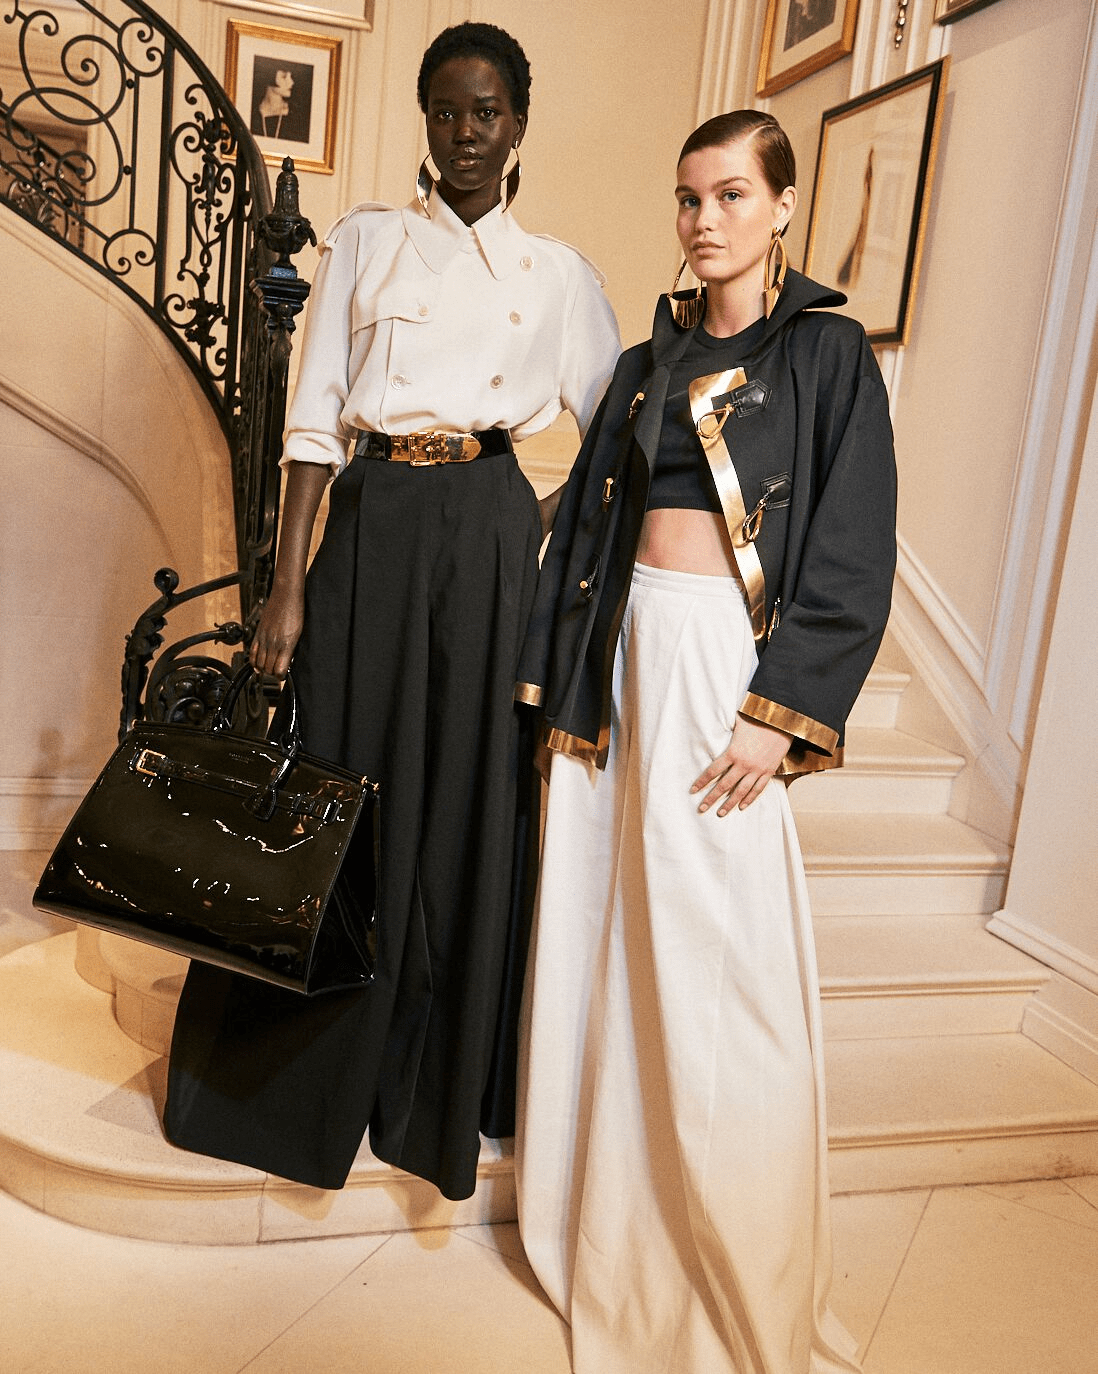 Hot Glam: 10 Valentine's Day Outfits Inspired By Ralph Lauren's Spring 2019 Show